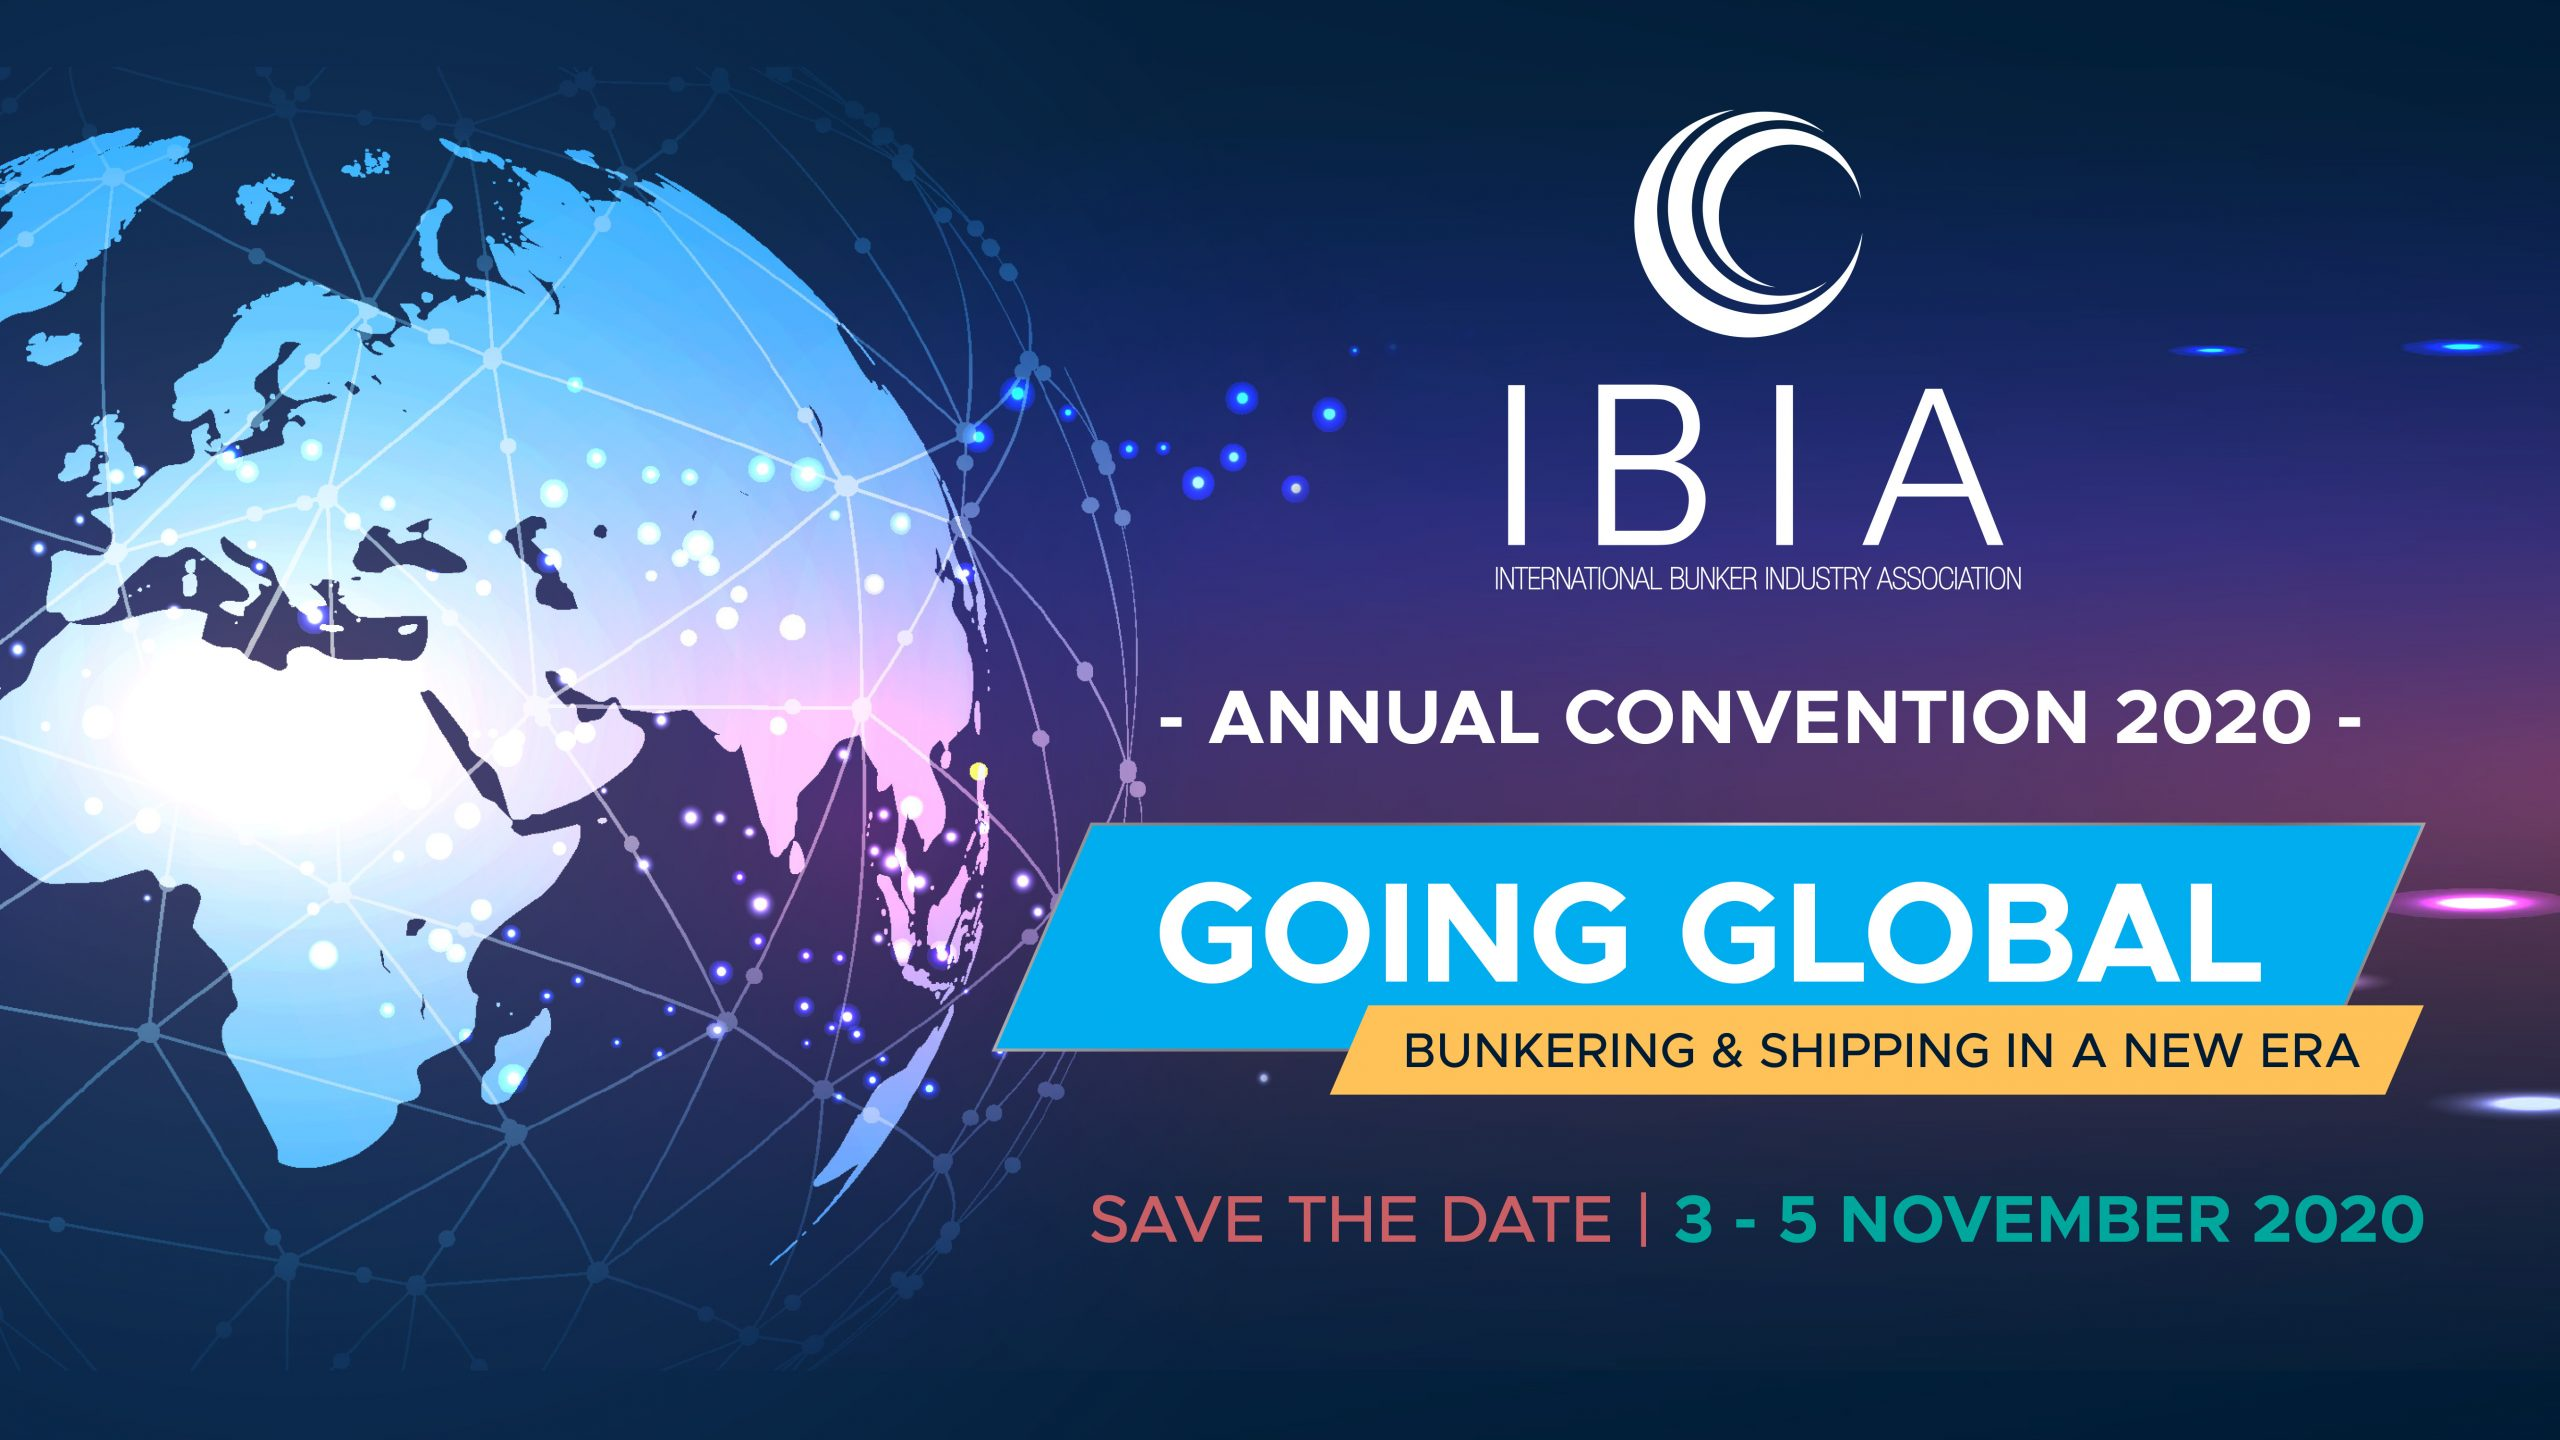 IBIA Annual Convention 2020 takes completely new and innovate format